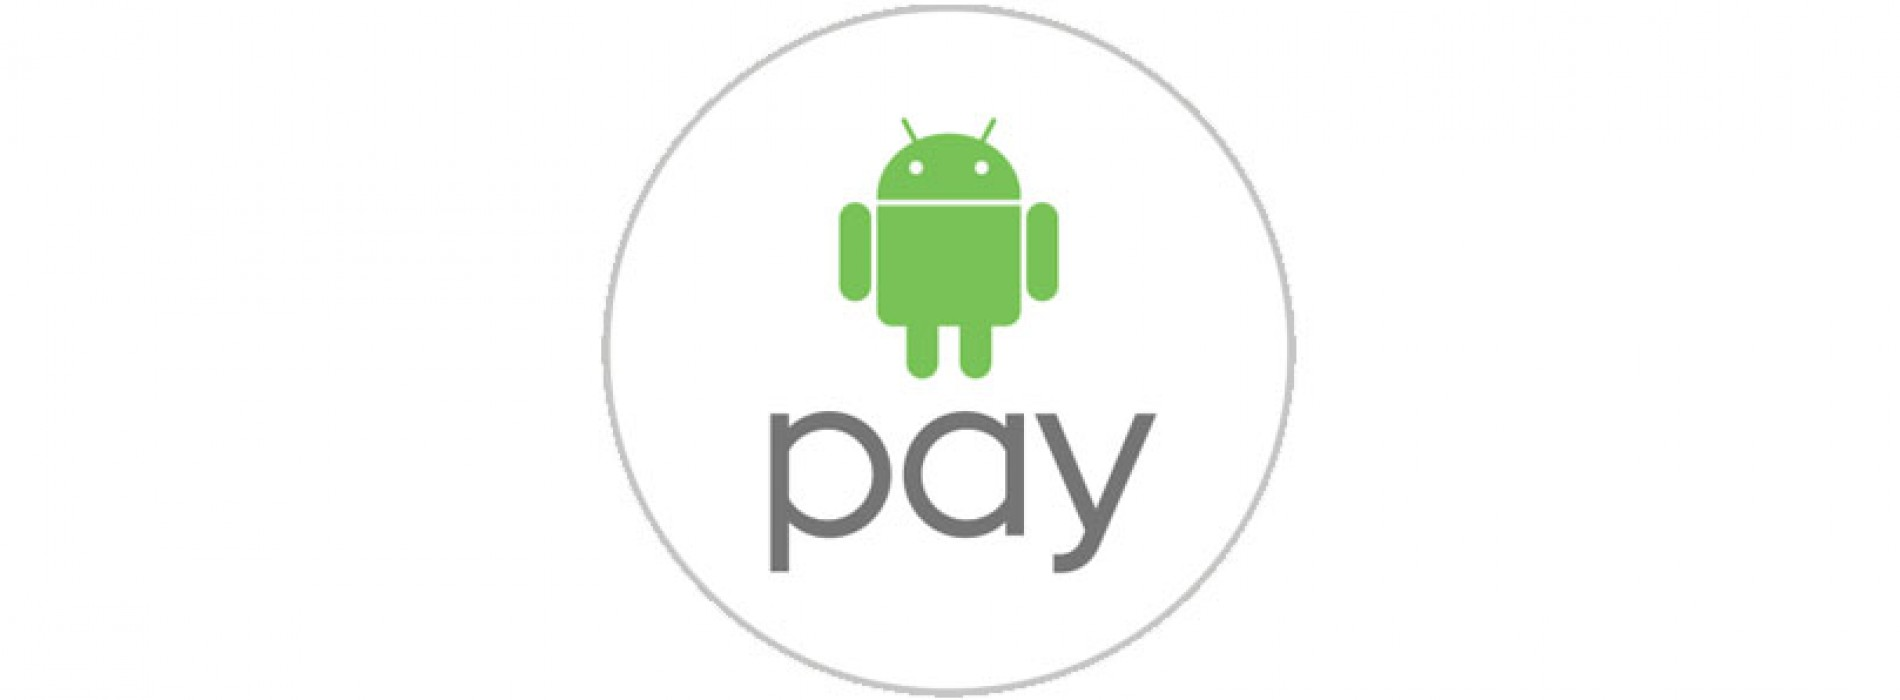 Use Android Pay for a chance to win a free Chromecast ...